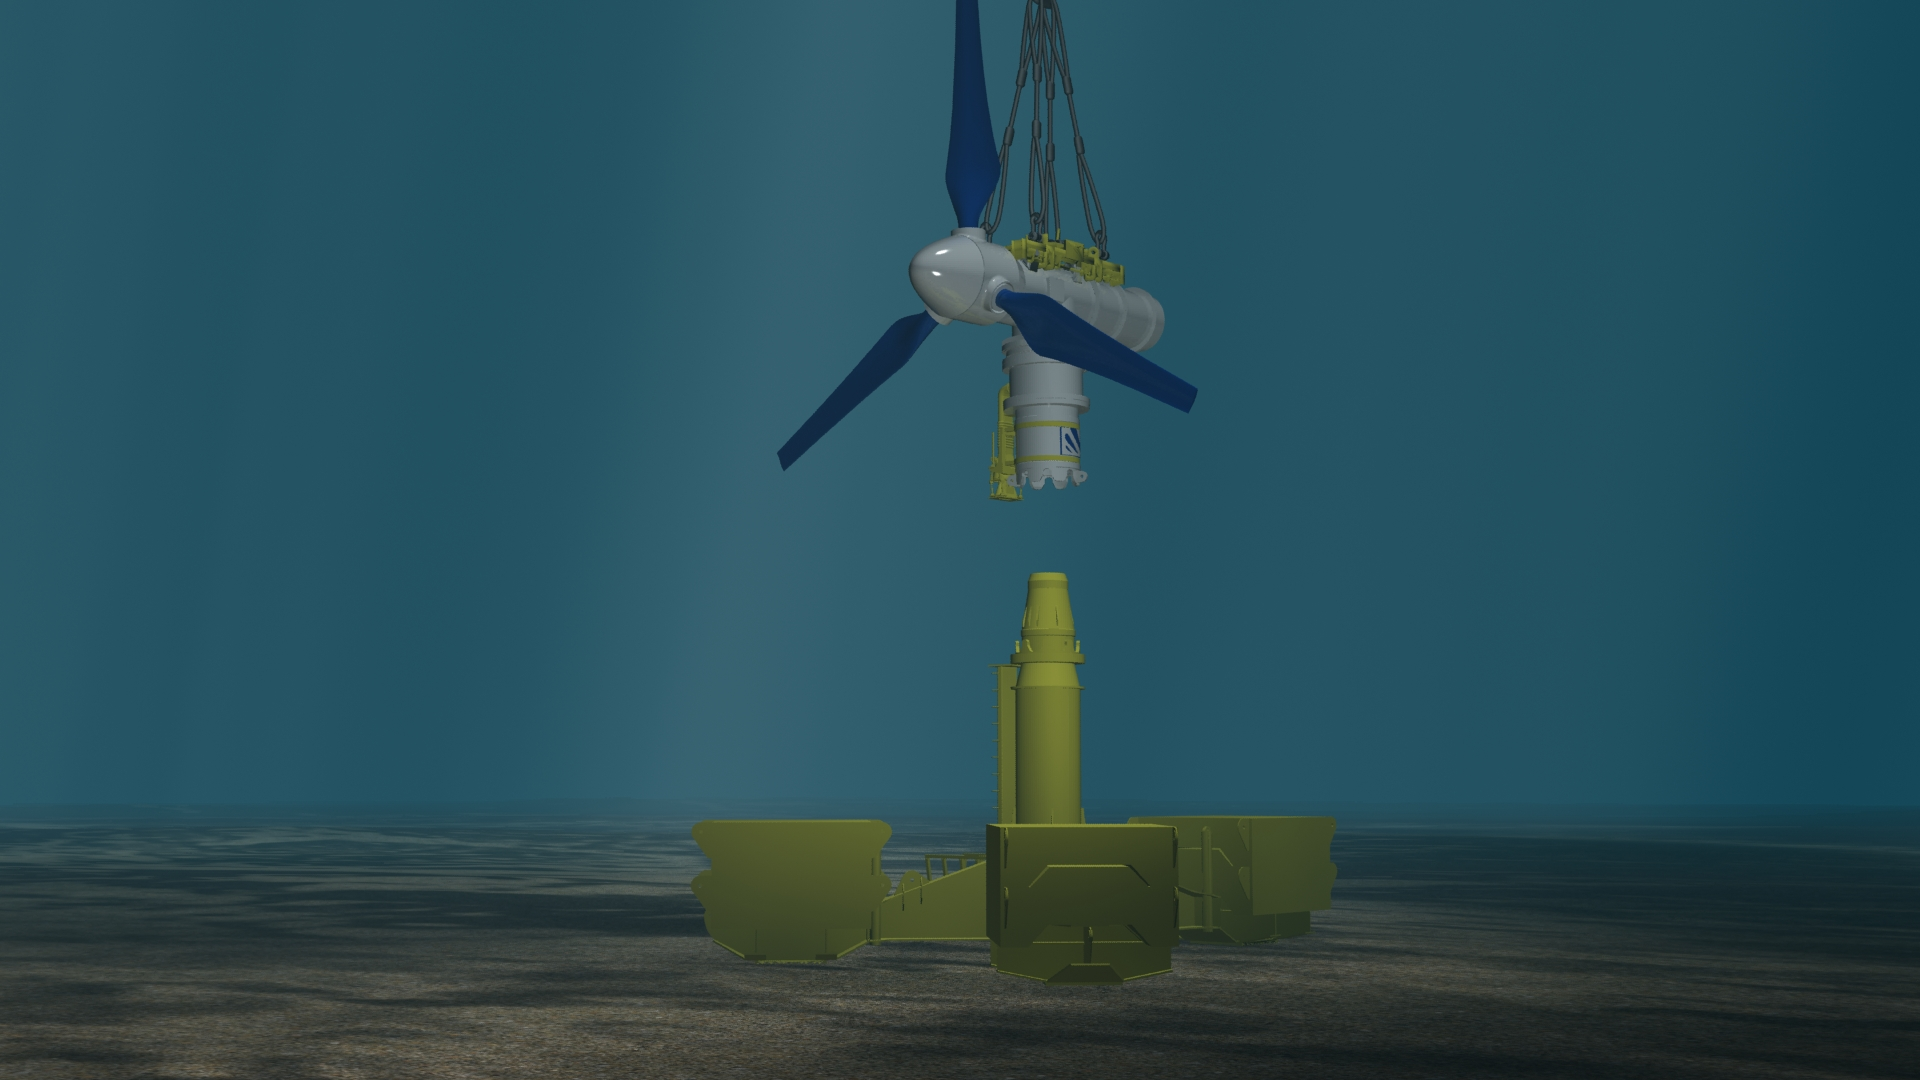 Figure 3 - The turbine section is lowered directly onto the already installed base section using underwater cameras for guidance. The whole thing is weighted down to the sea bed with large ballast. Each of the three pieces of ballast weighs 200 tonnes, as that is the limit of the transporting equipment.